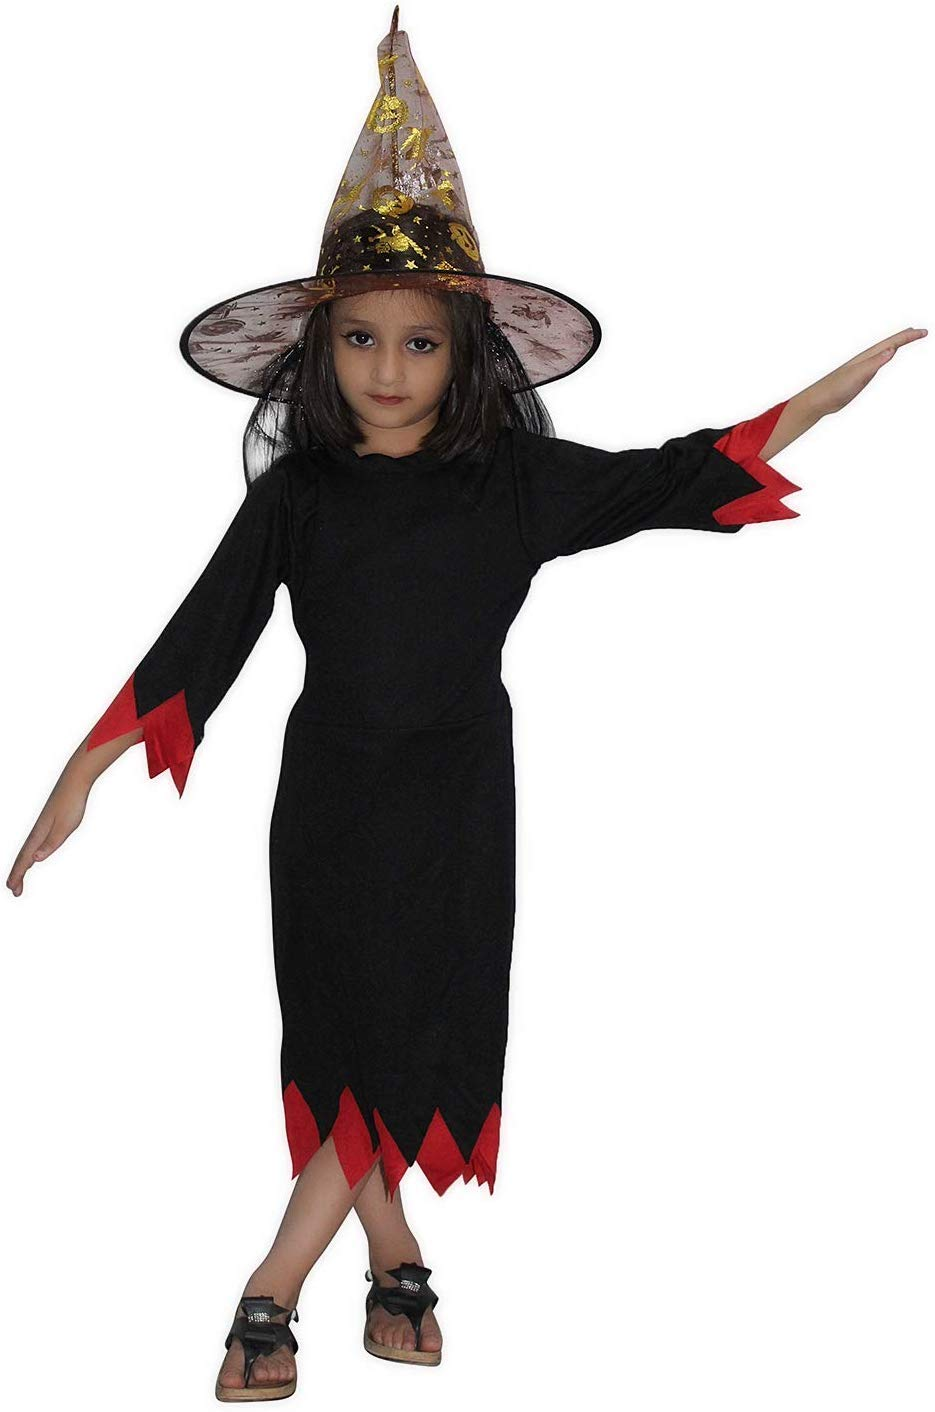 Kaku Fancy Dresses Witch Costume with Cap/California Cosplay Halloween  Costume -Black, 6-6 Years, for Girls